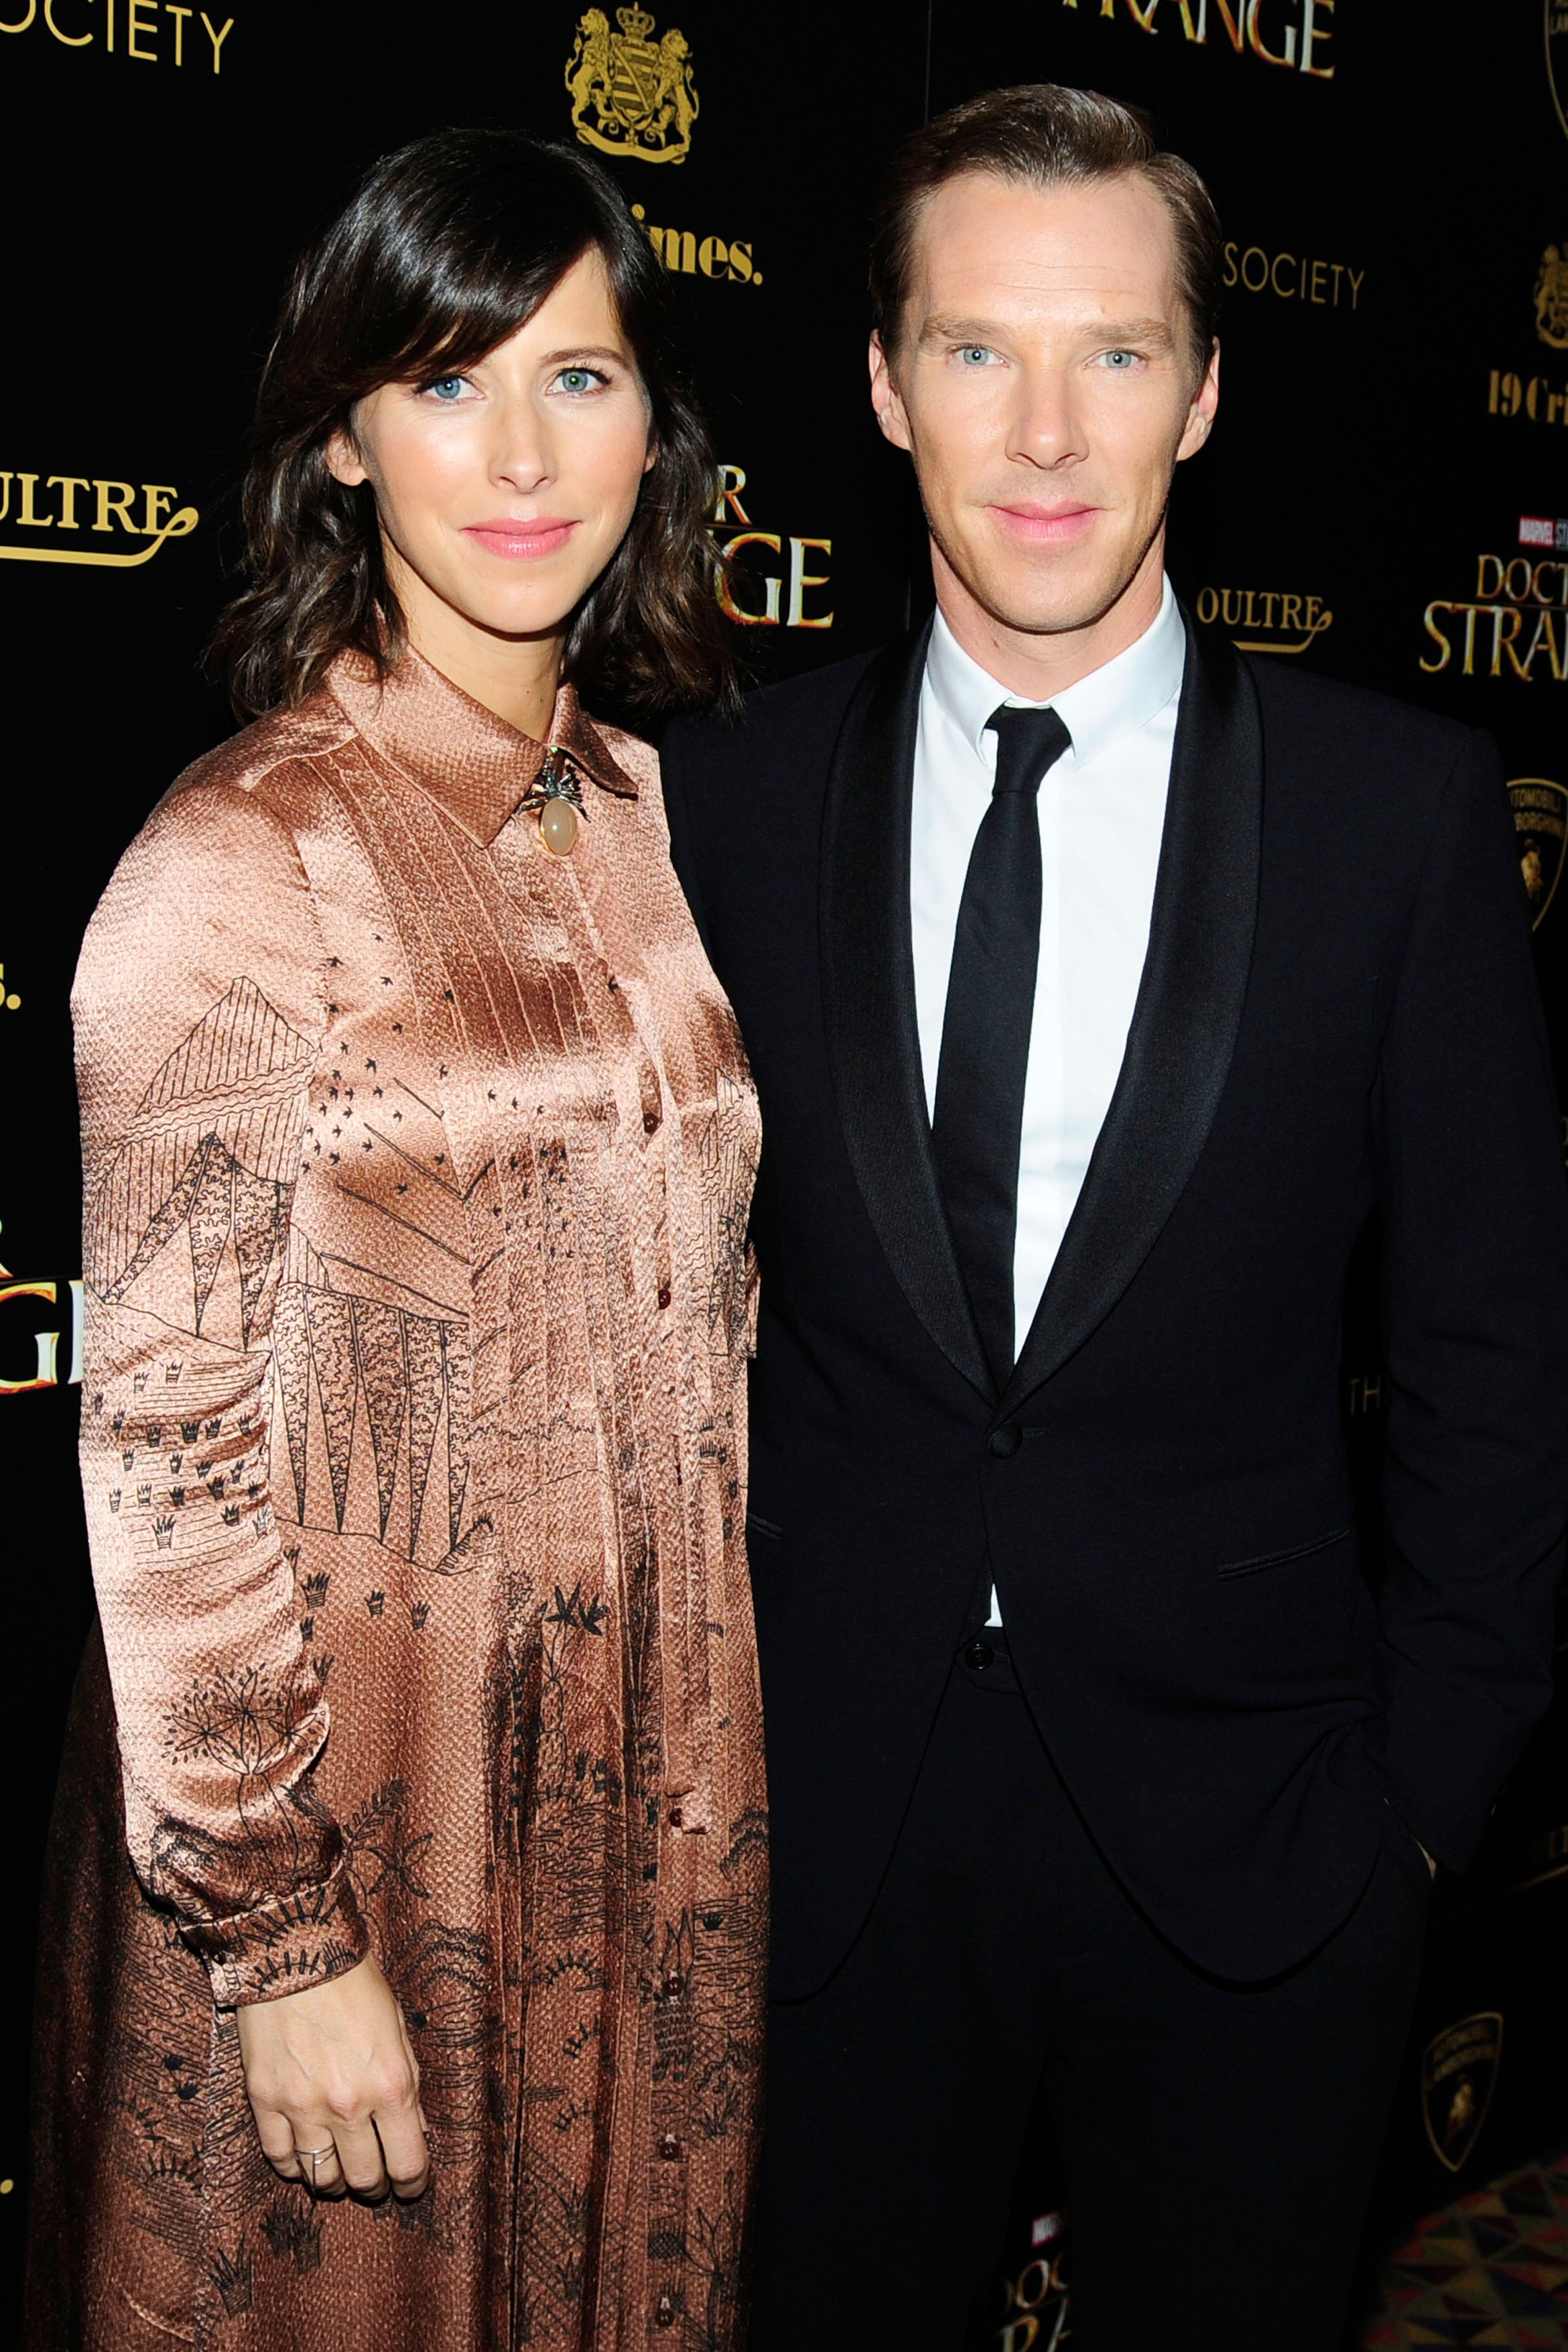 Sophie Hunter and Benedict Cumberbatch When the internet's boyfriend Benedict Cumberbatch and his wife look directly into the cameras, it's like the same pair of eyes is staring into your soul twice.